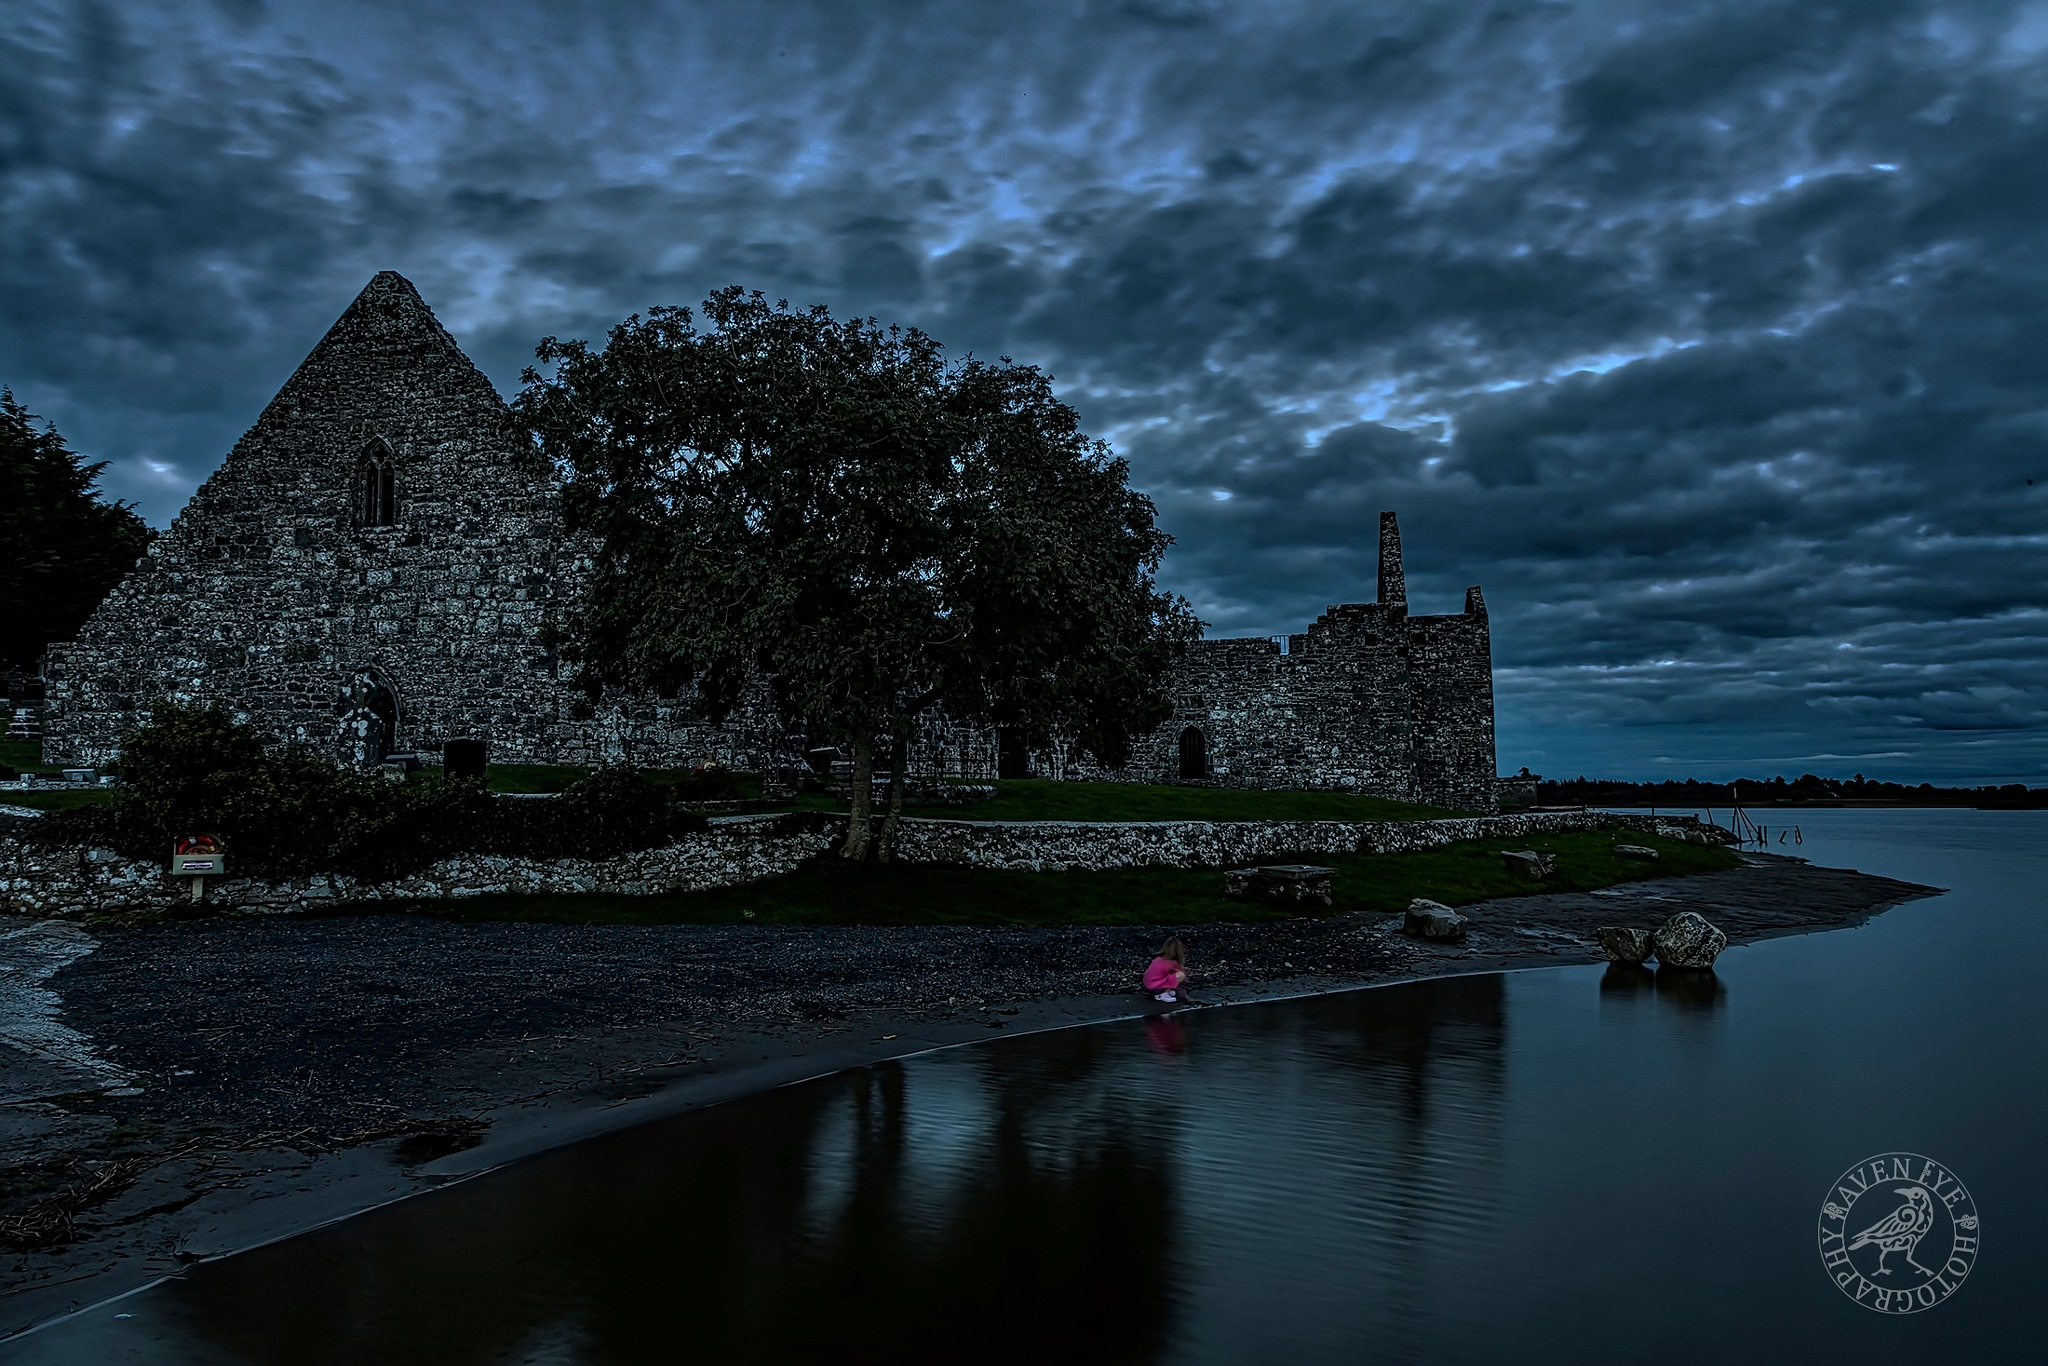 Child Playing at Dusk by Declan Byrne